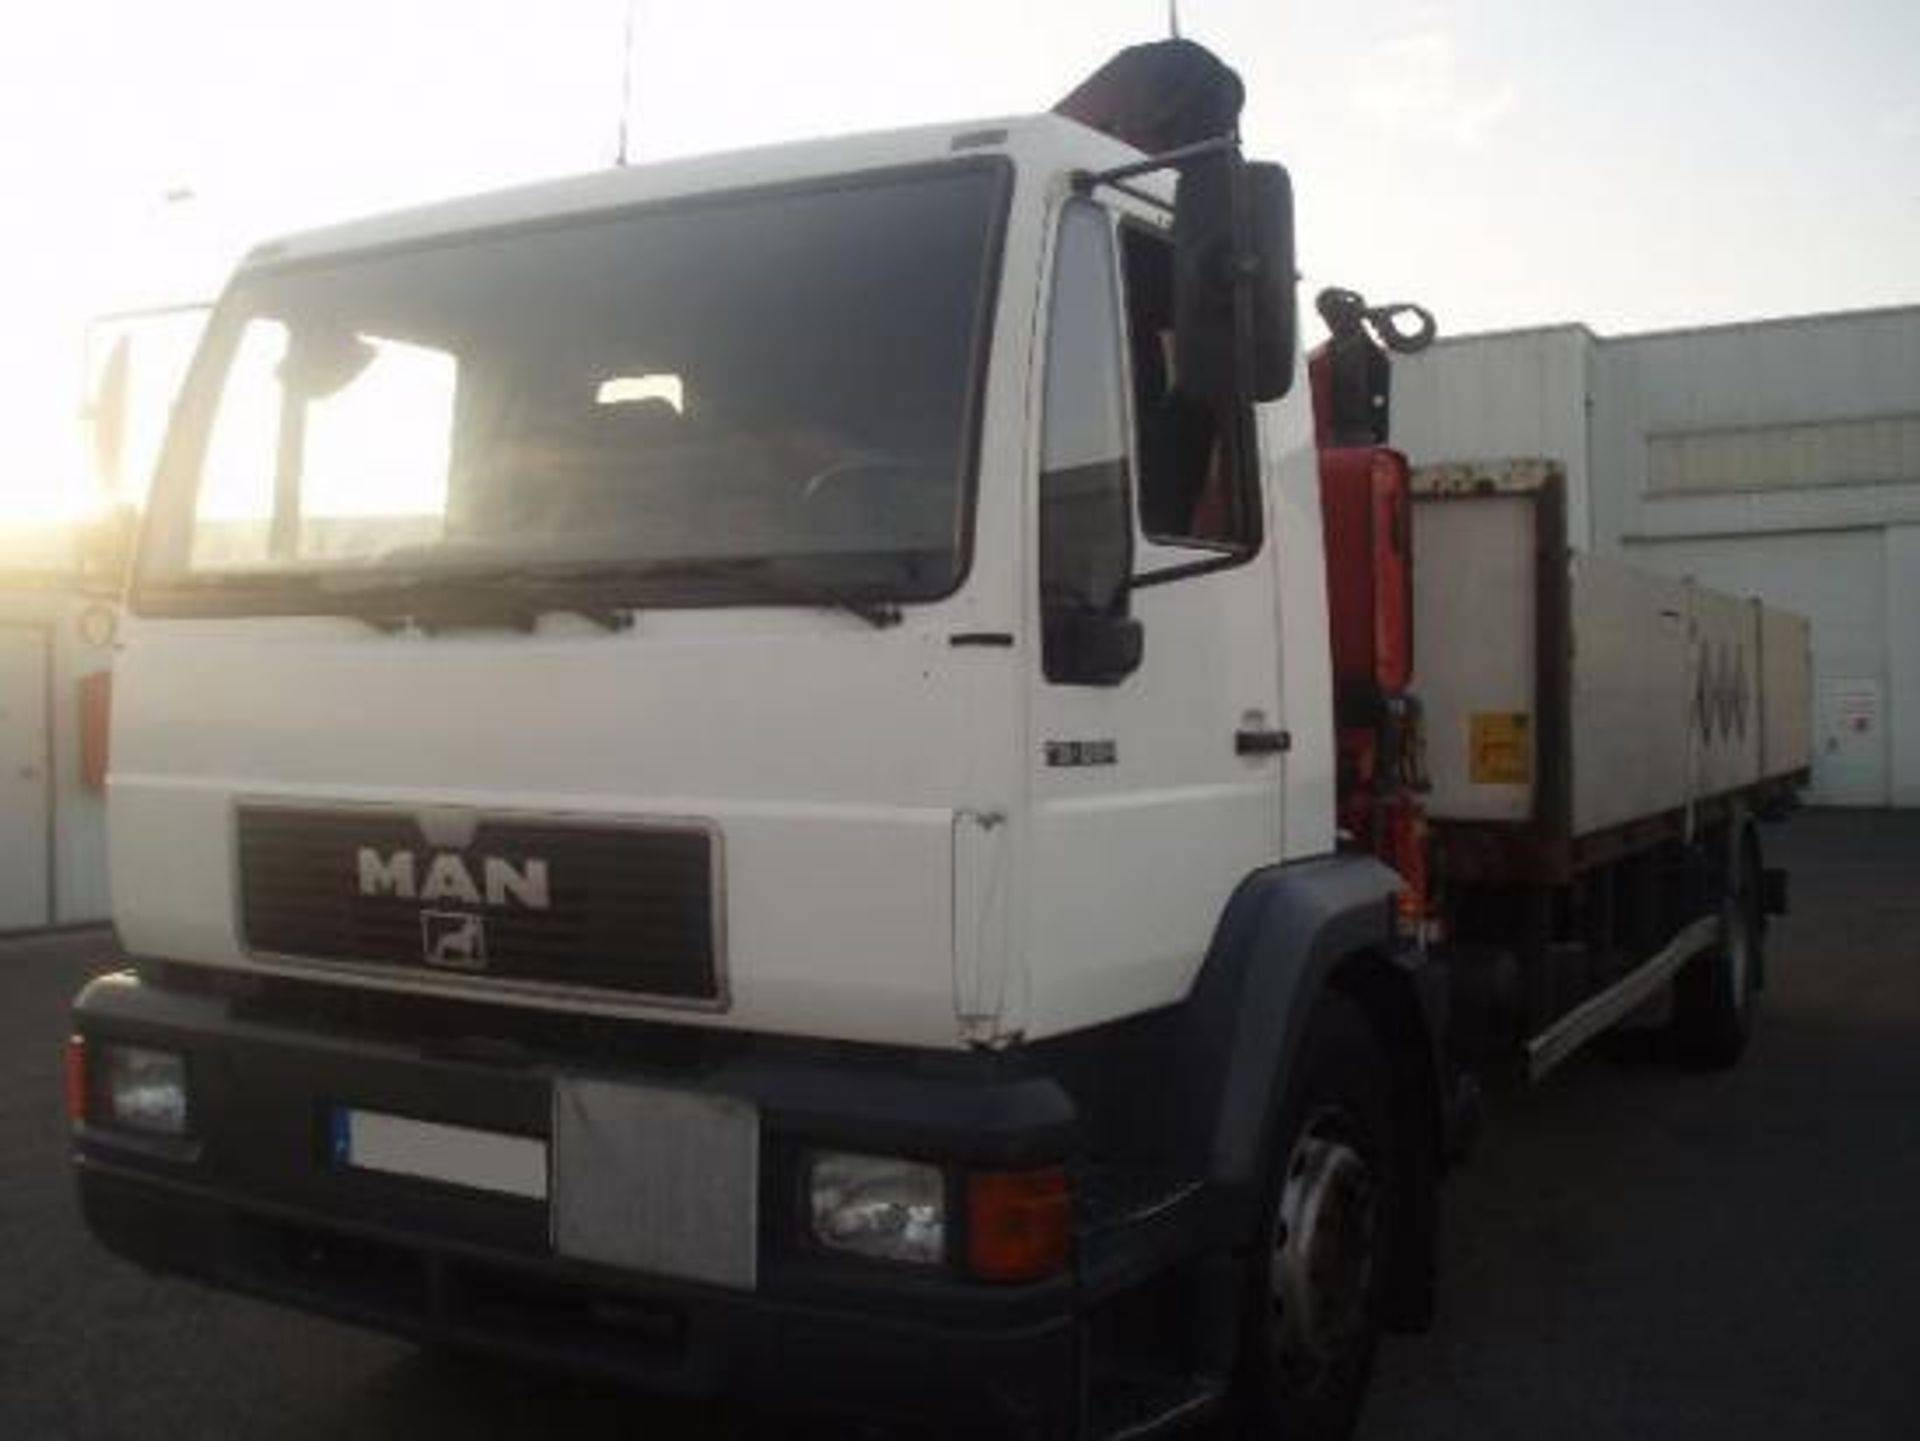 Delivery Lorry to Cater for all Materials